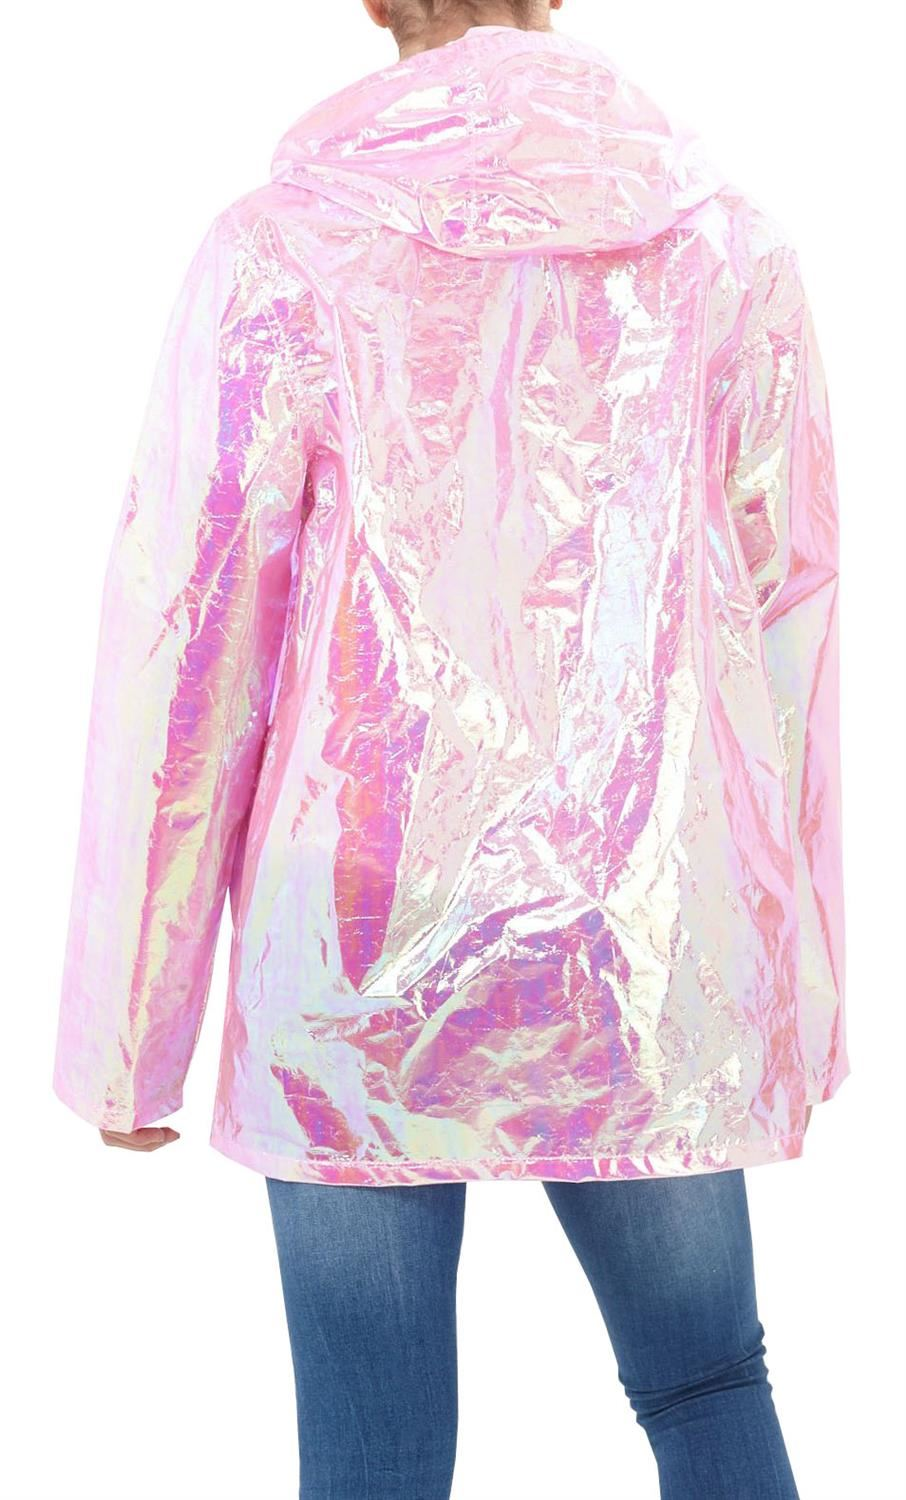 Womens-Waterproof-Holographic-Zipped-Neon-Festival-Mac-Jacket-Parka-Raincoat thumbnail 4